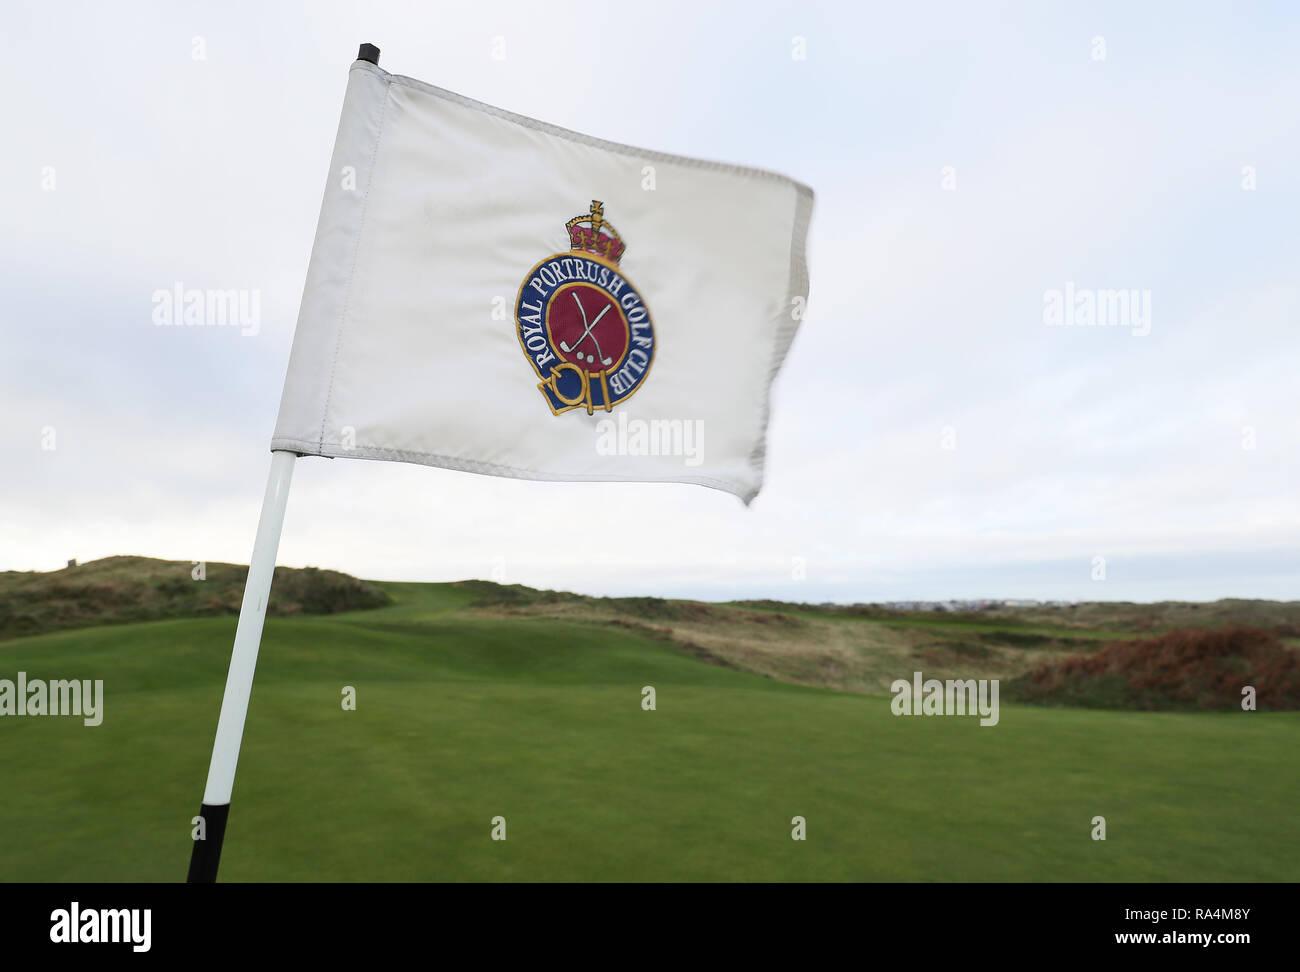 A flag on the course at Royal Portrush Golf Club in Co. Antrim.The organisers of golf's Open Championship have said they are staggered by the level of interest in the tournament's historic return to Northern Ireland. - Stock Image